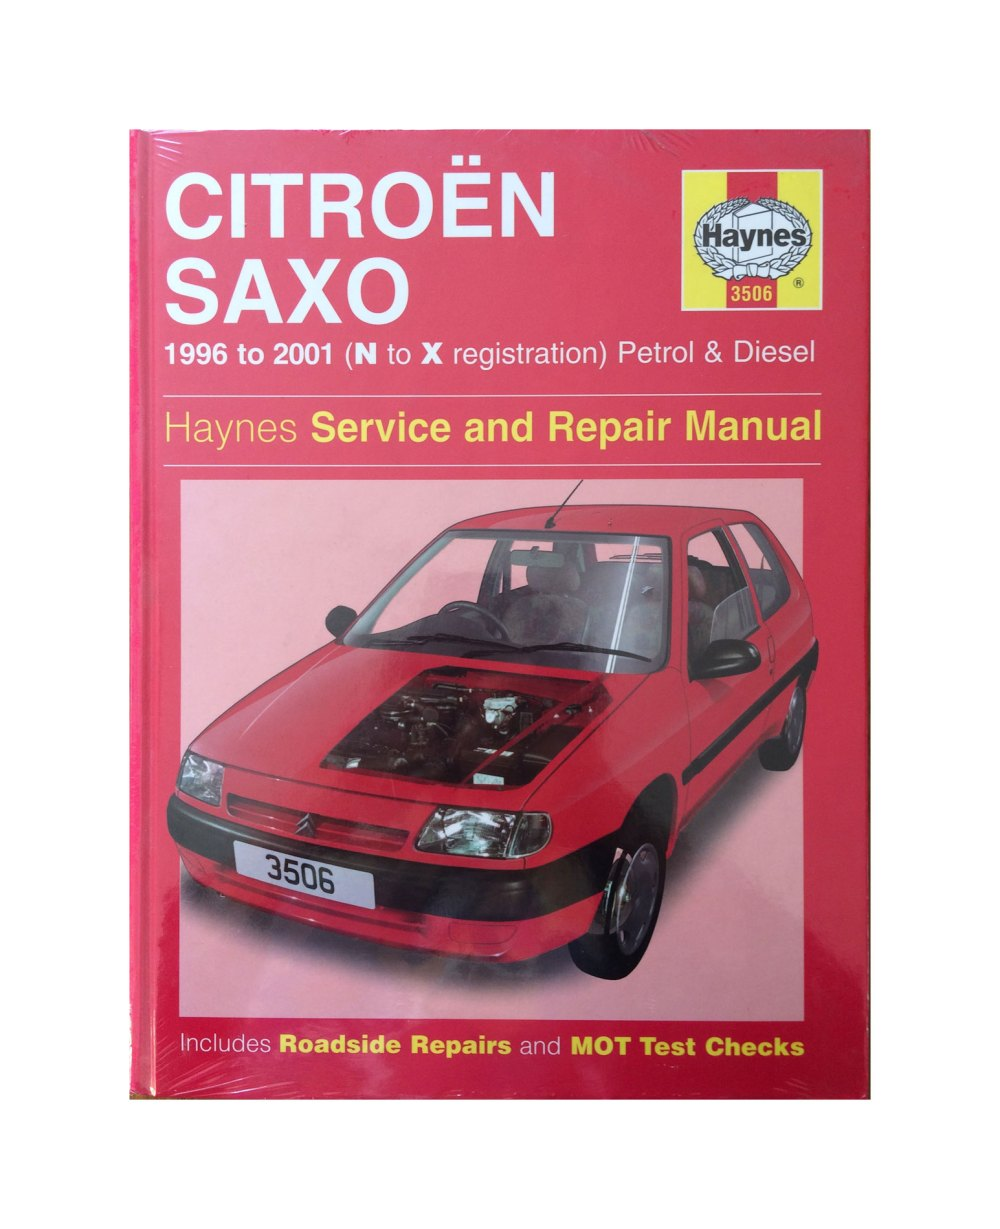 medium resolution of citroen saxo n x reg petrol diesel haynes service repair manual